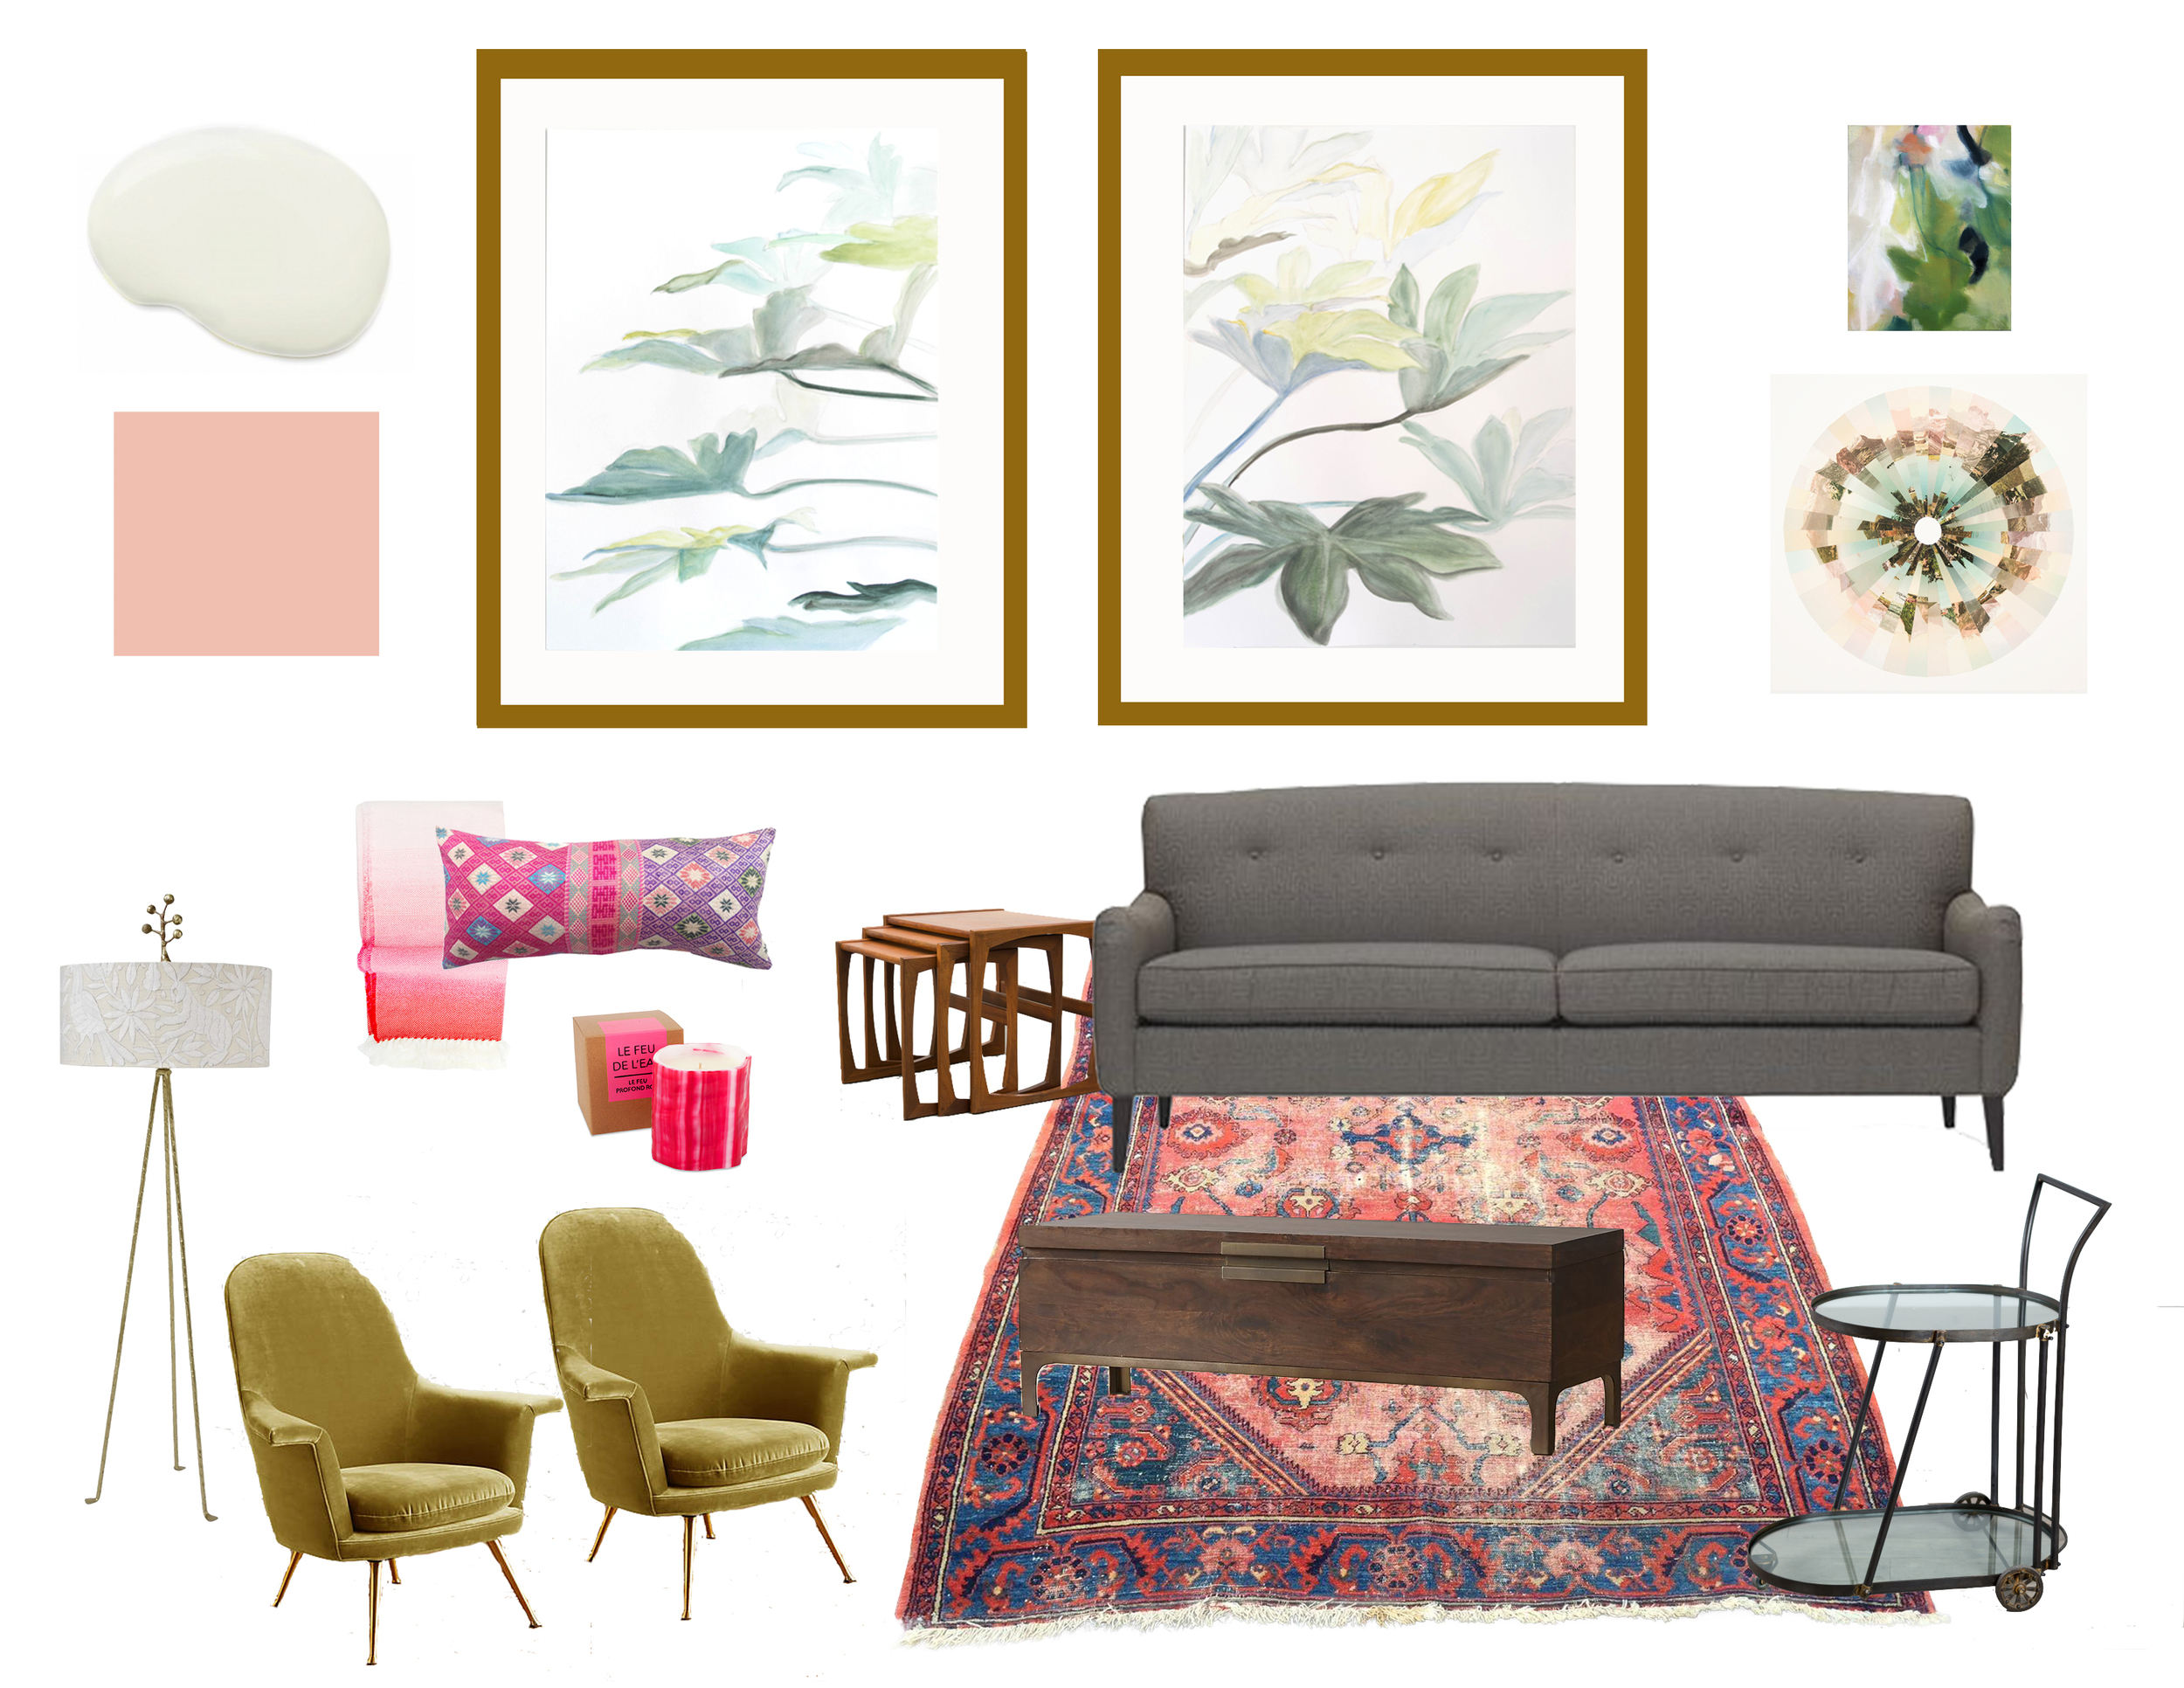 Sofa  /  Chairs  /  Trunk  /  Nesting Tables  /  Bar Cart  /  Rug  /  Lamp  /  Pillow  /  Throw  /  Candle  /  Small Painting  /  Photo Collage  /  Neutral Paint  /  Coral Paint /  My Art